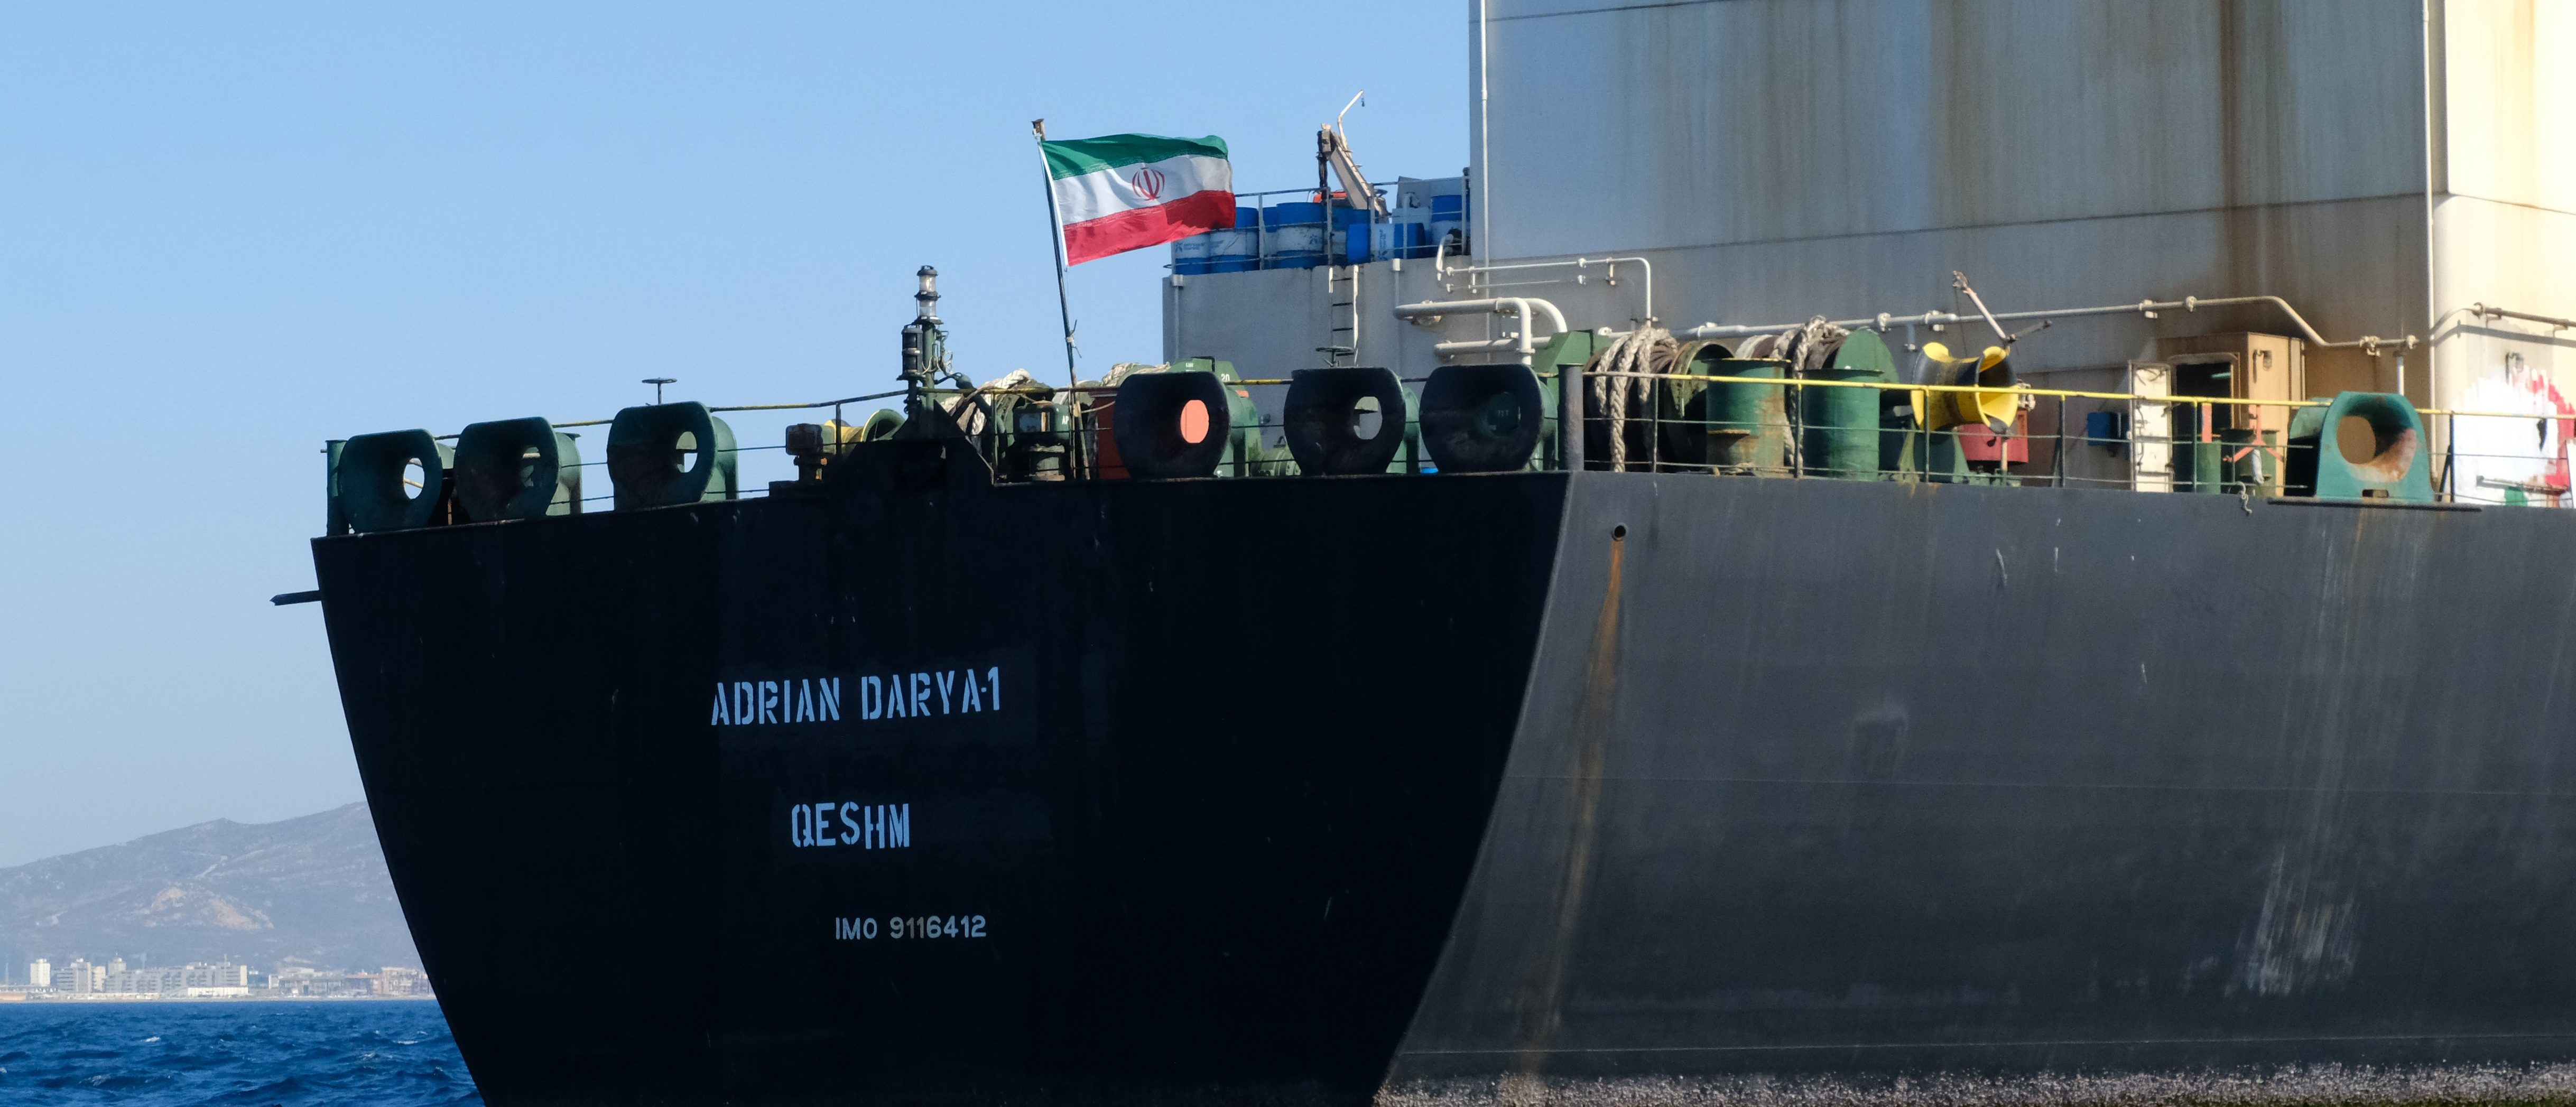 TOPSHOT - An Iranian flag flutters on board the Adrian Darya oil tanker, formerly known as Grace 1, off the coast of Gibraltar on August 18, 2019. - Gibraltar rejected a US demand to seize the Iranian oil tanker at the centre of a diplomatic dispute as it prepared to leave the British overseas territory after weeks of detention. (Photo by Johnny BUGEJA / AFP) (Photo by JOHNNY BUGEJA/AFP via Getty Images)